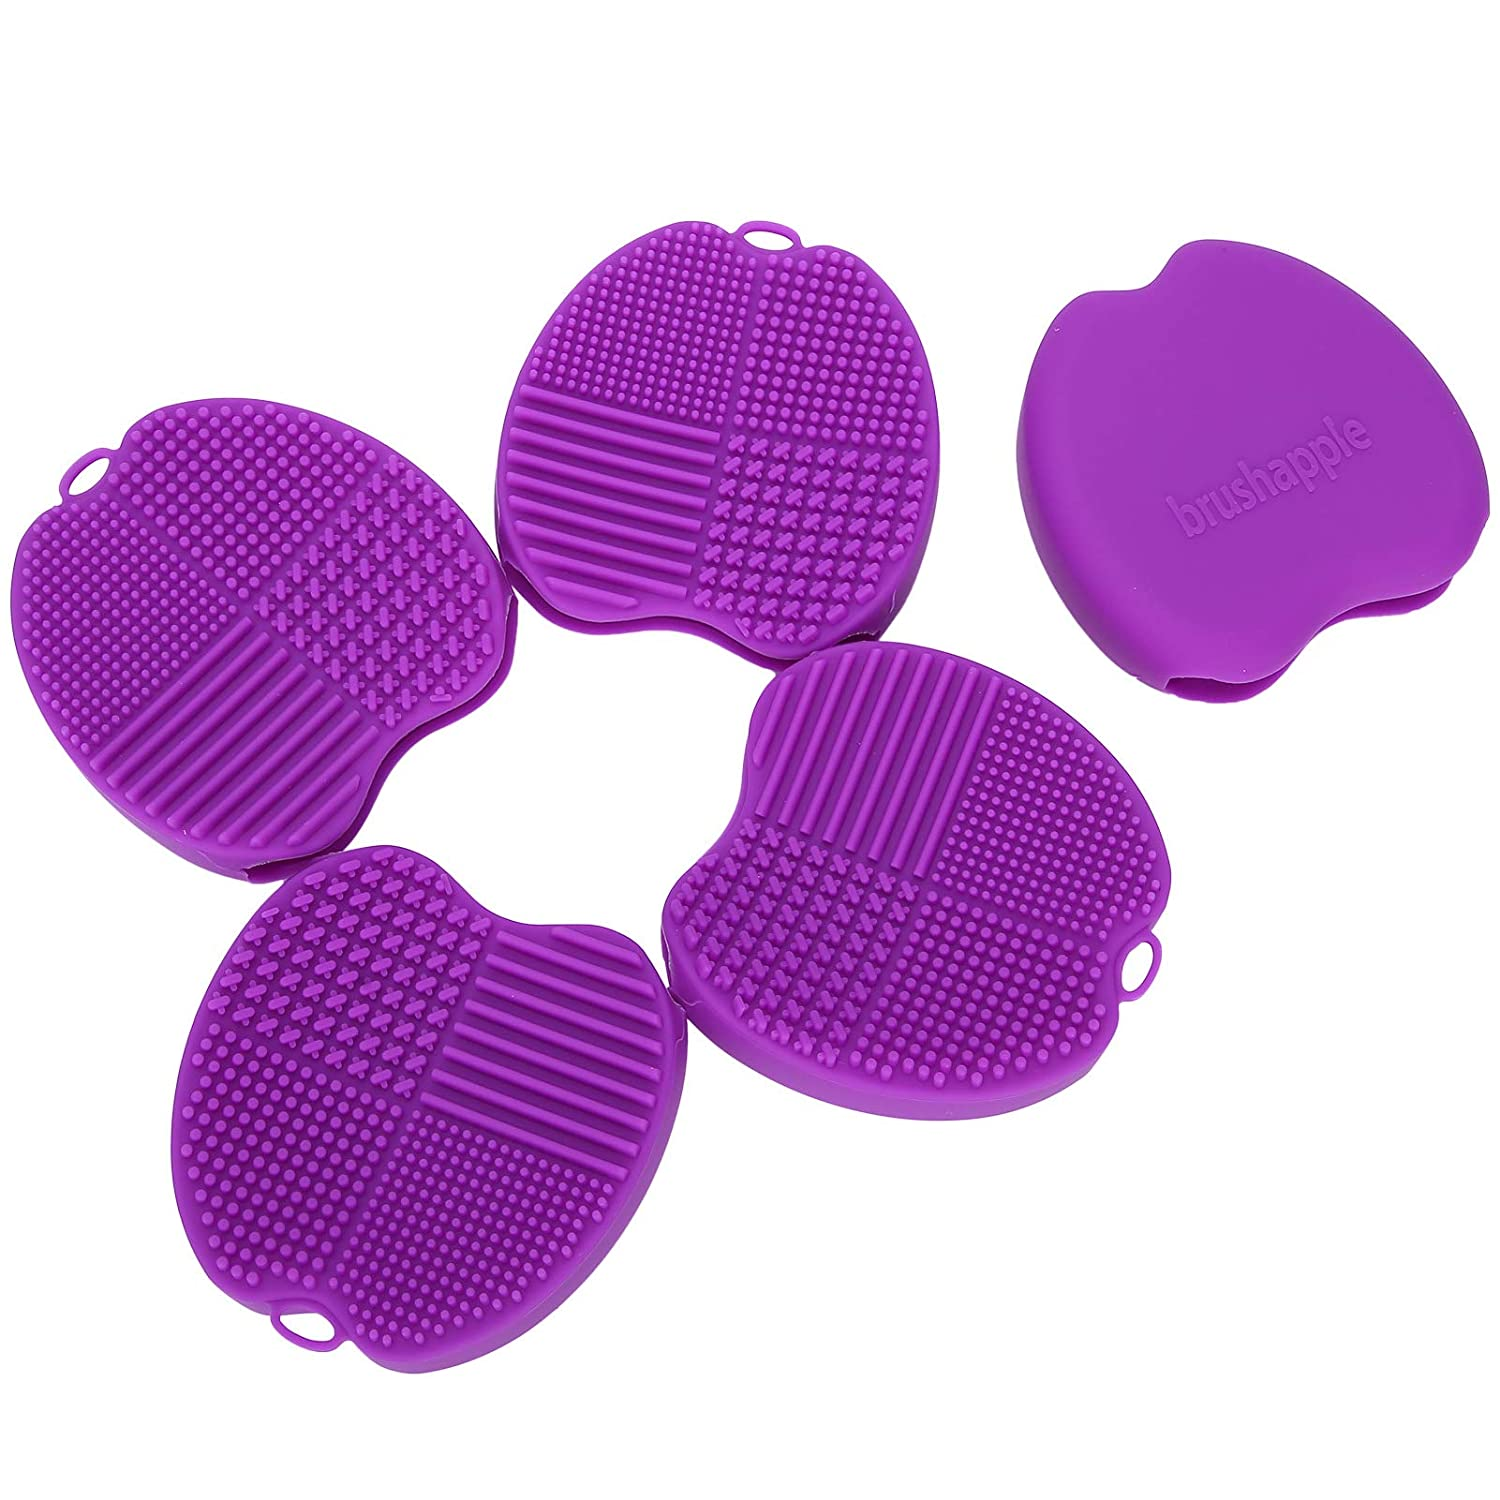 5pcs Brush Cleaning Excellence Scruber Mat Limited price Makeup for Pad Bea Cleaner